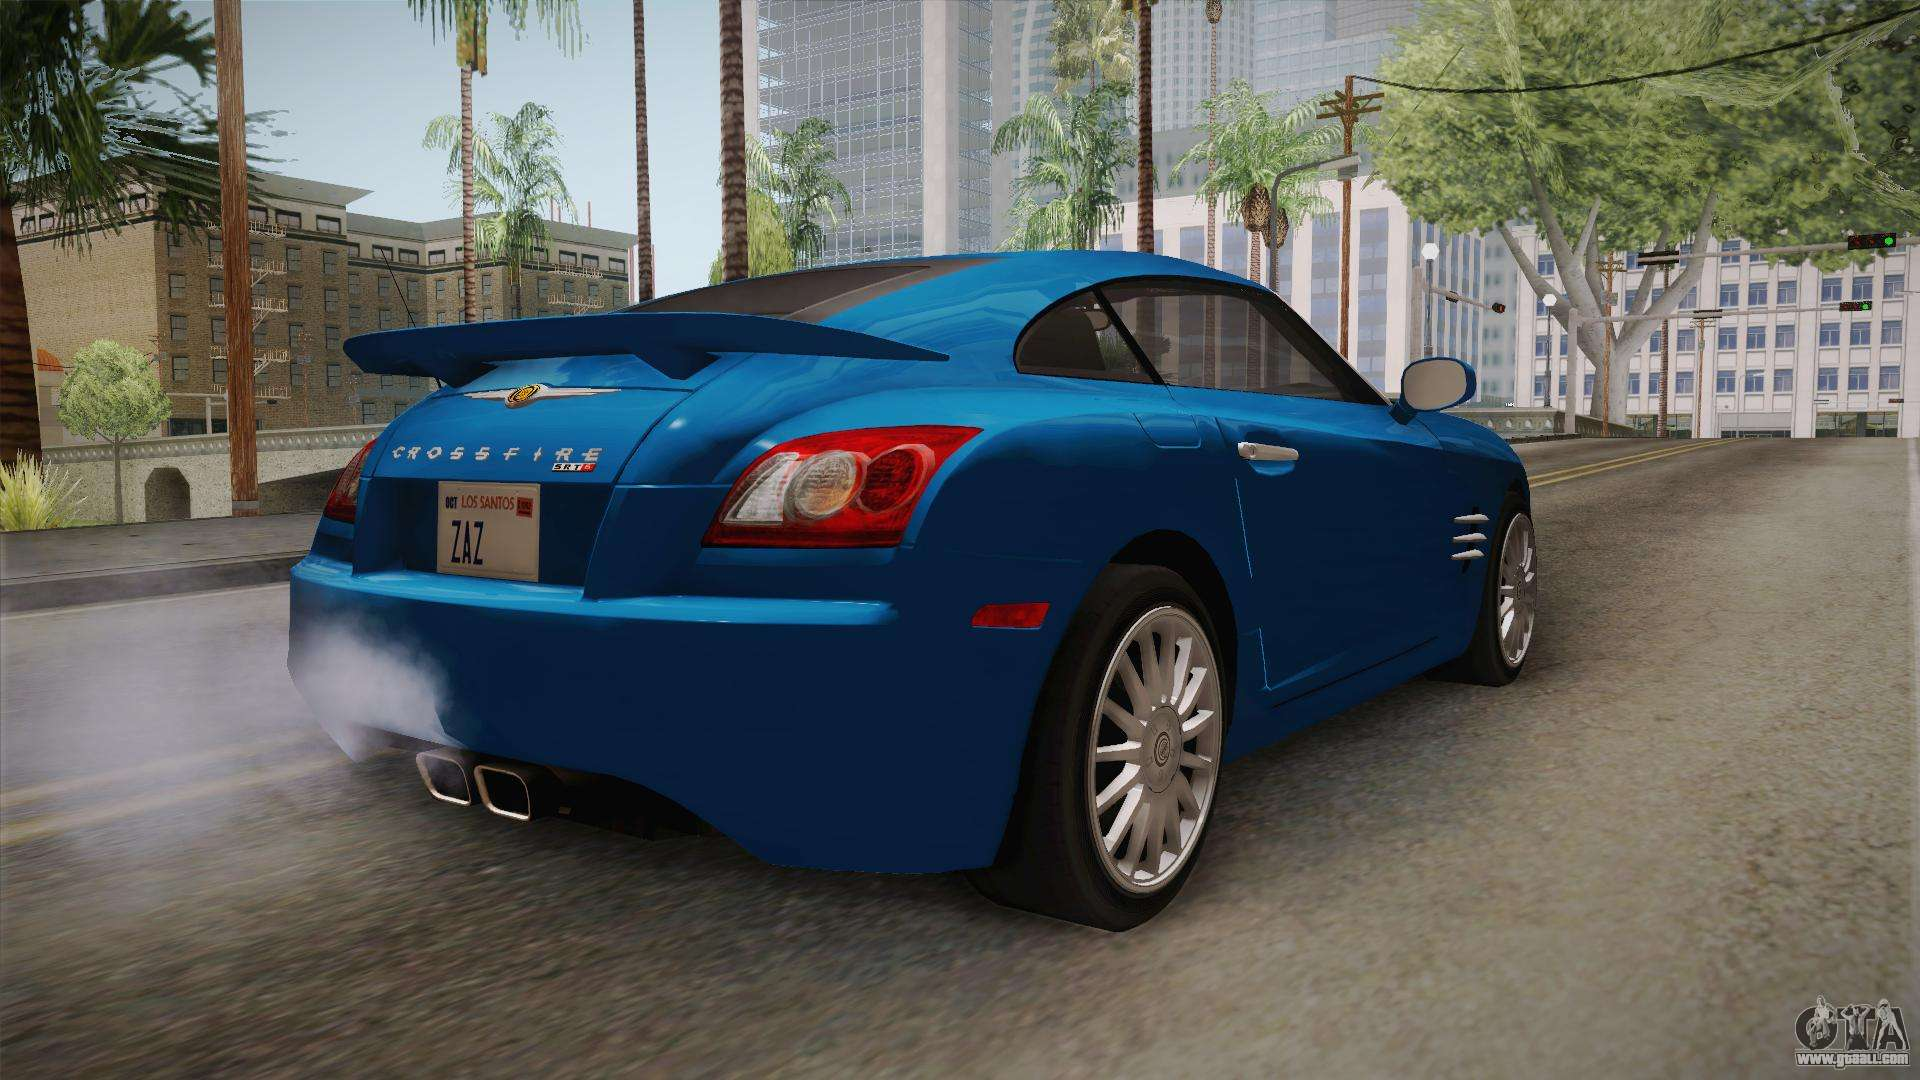 chrysler crossfire srt 6 2006 for gta san andreas. Black Bedroom Furniture Sets. Home Design Ideas